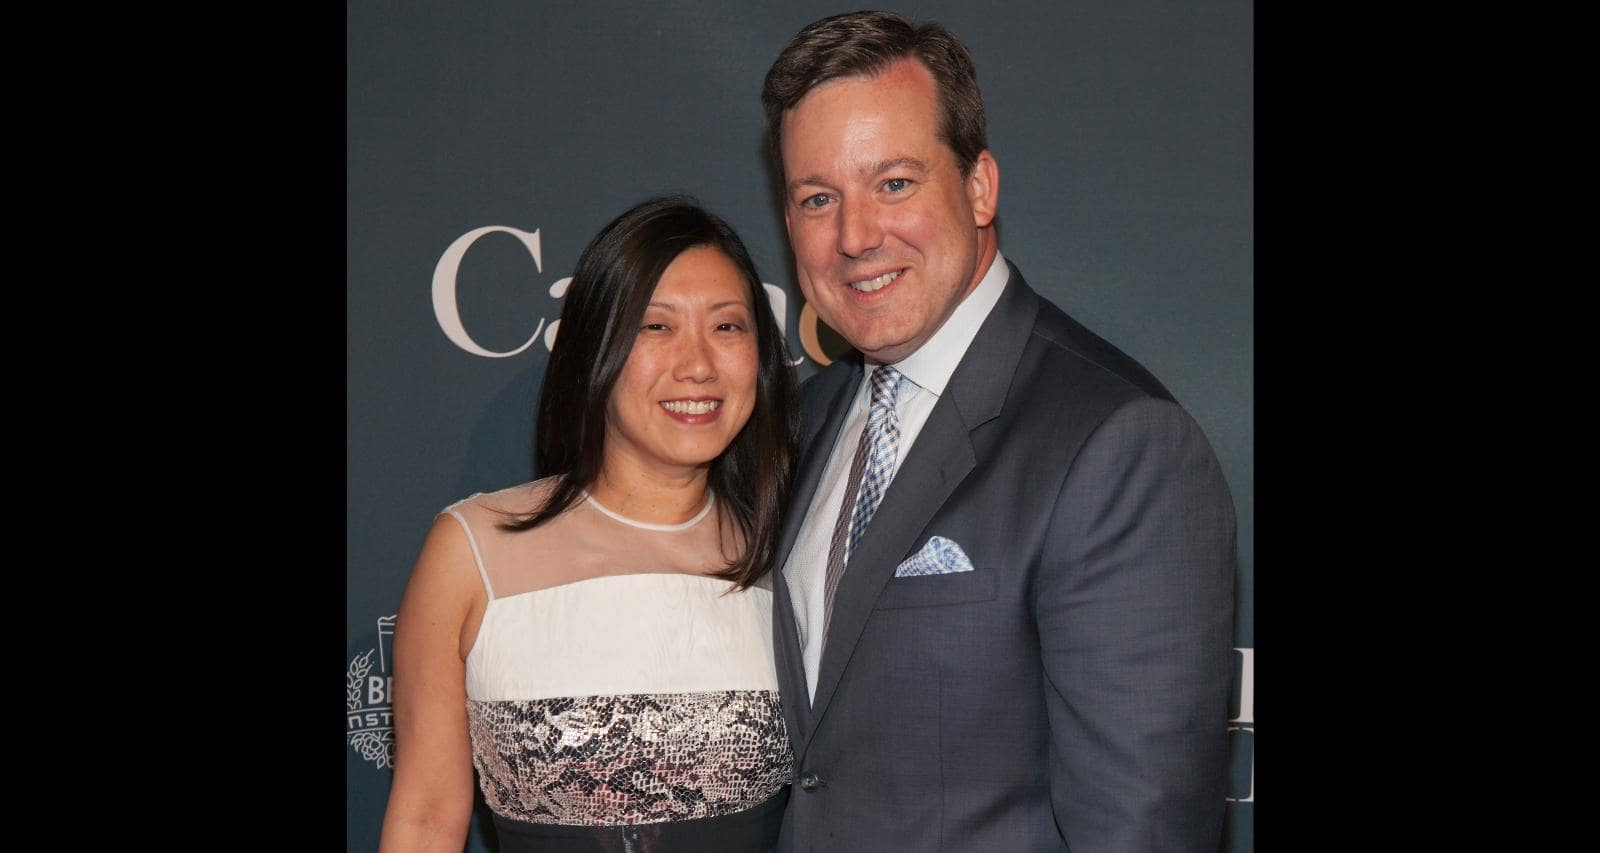 Shirley Hung Henry Wiki, Age, Family, Kids, Education, Career and Facts About Ed Henry's Wife